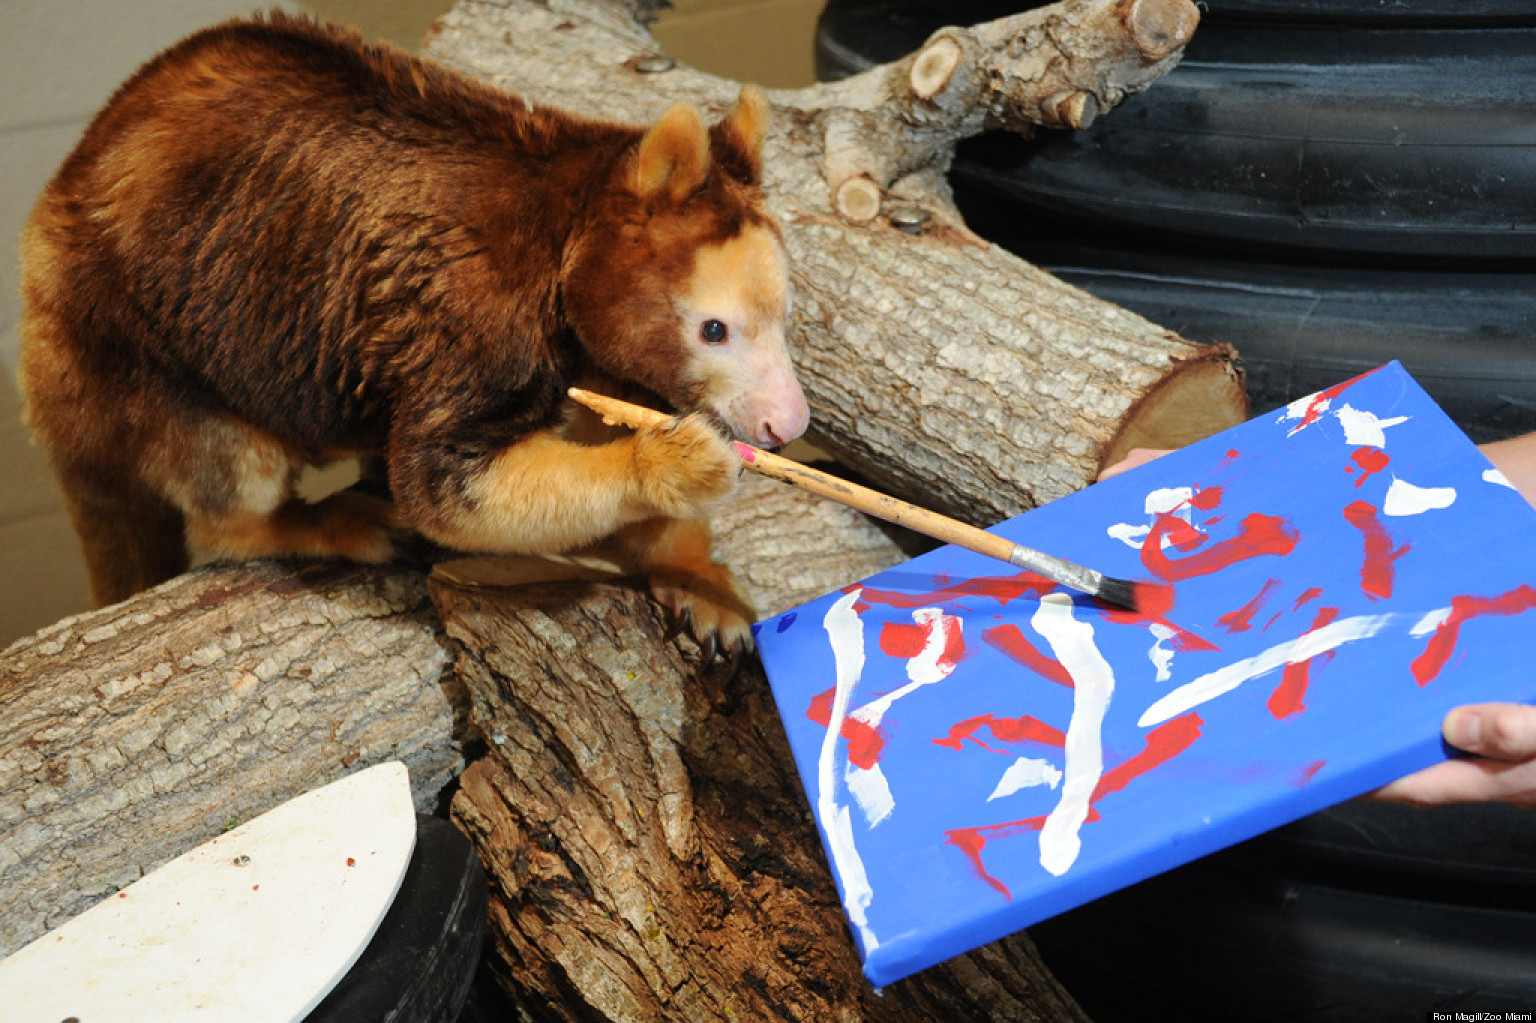 Patty-the-Tree-Kangaroo-daubs-final-touches-on-her-masterpiece-at-Miami-Zoo. Home